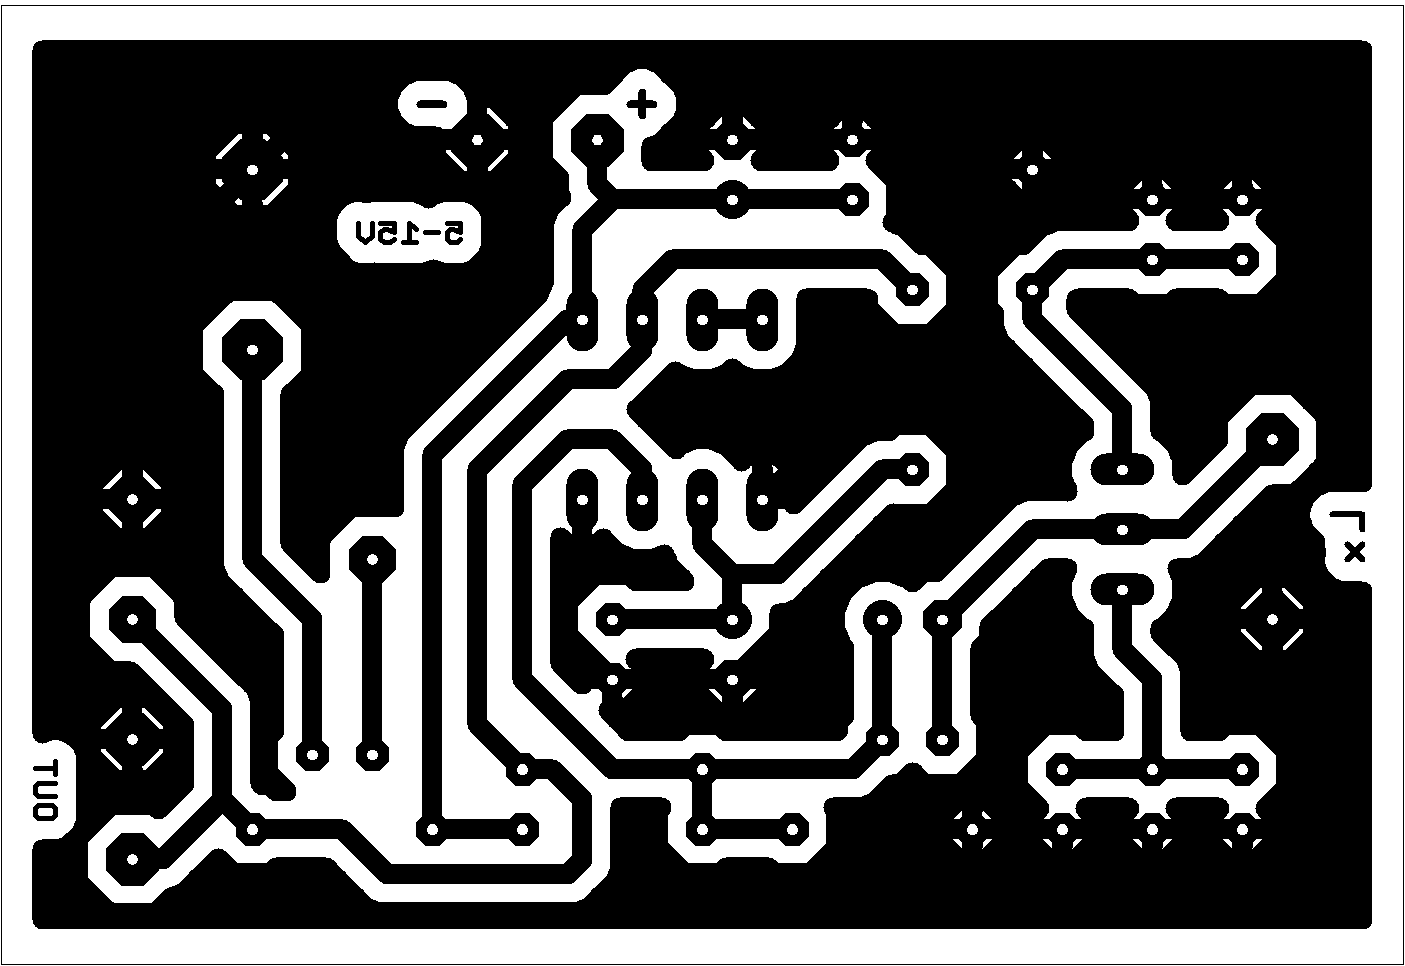 hight resolution of lmeter brd 600dpi png pcb layout